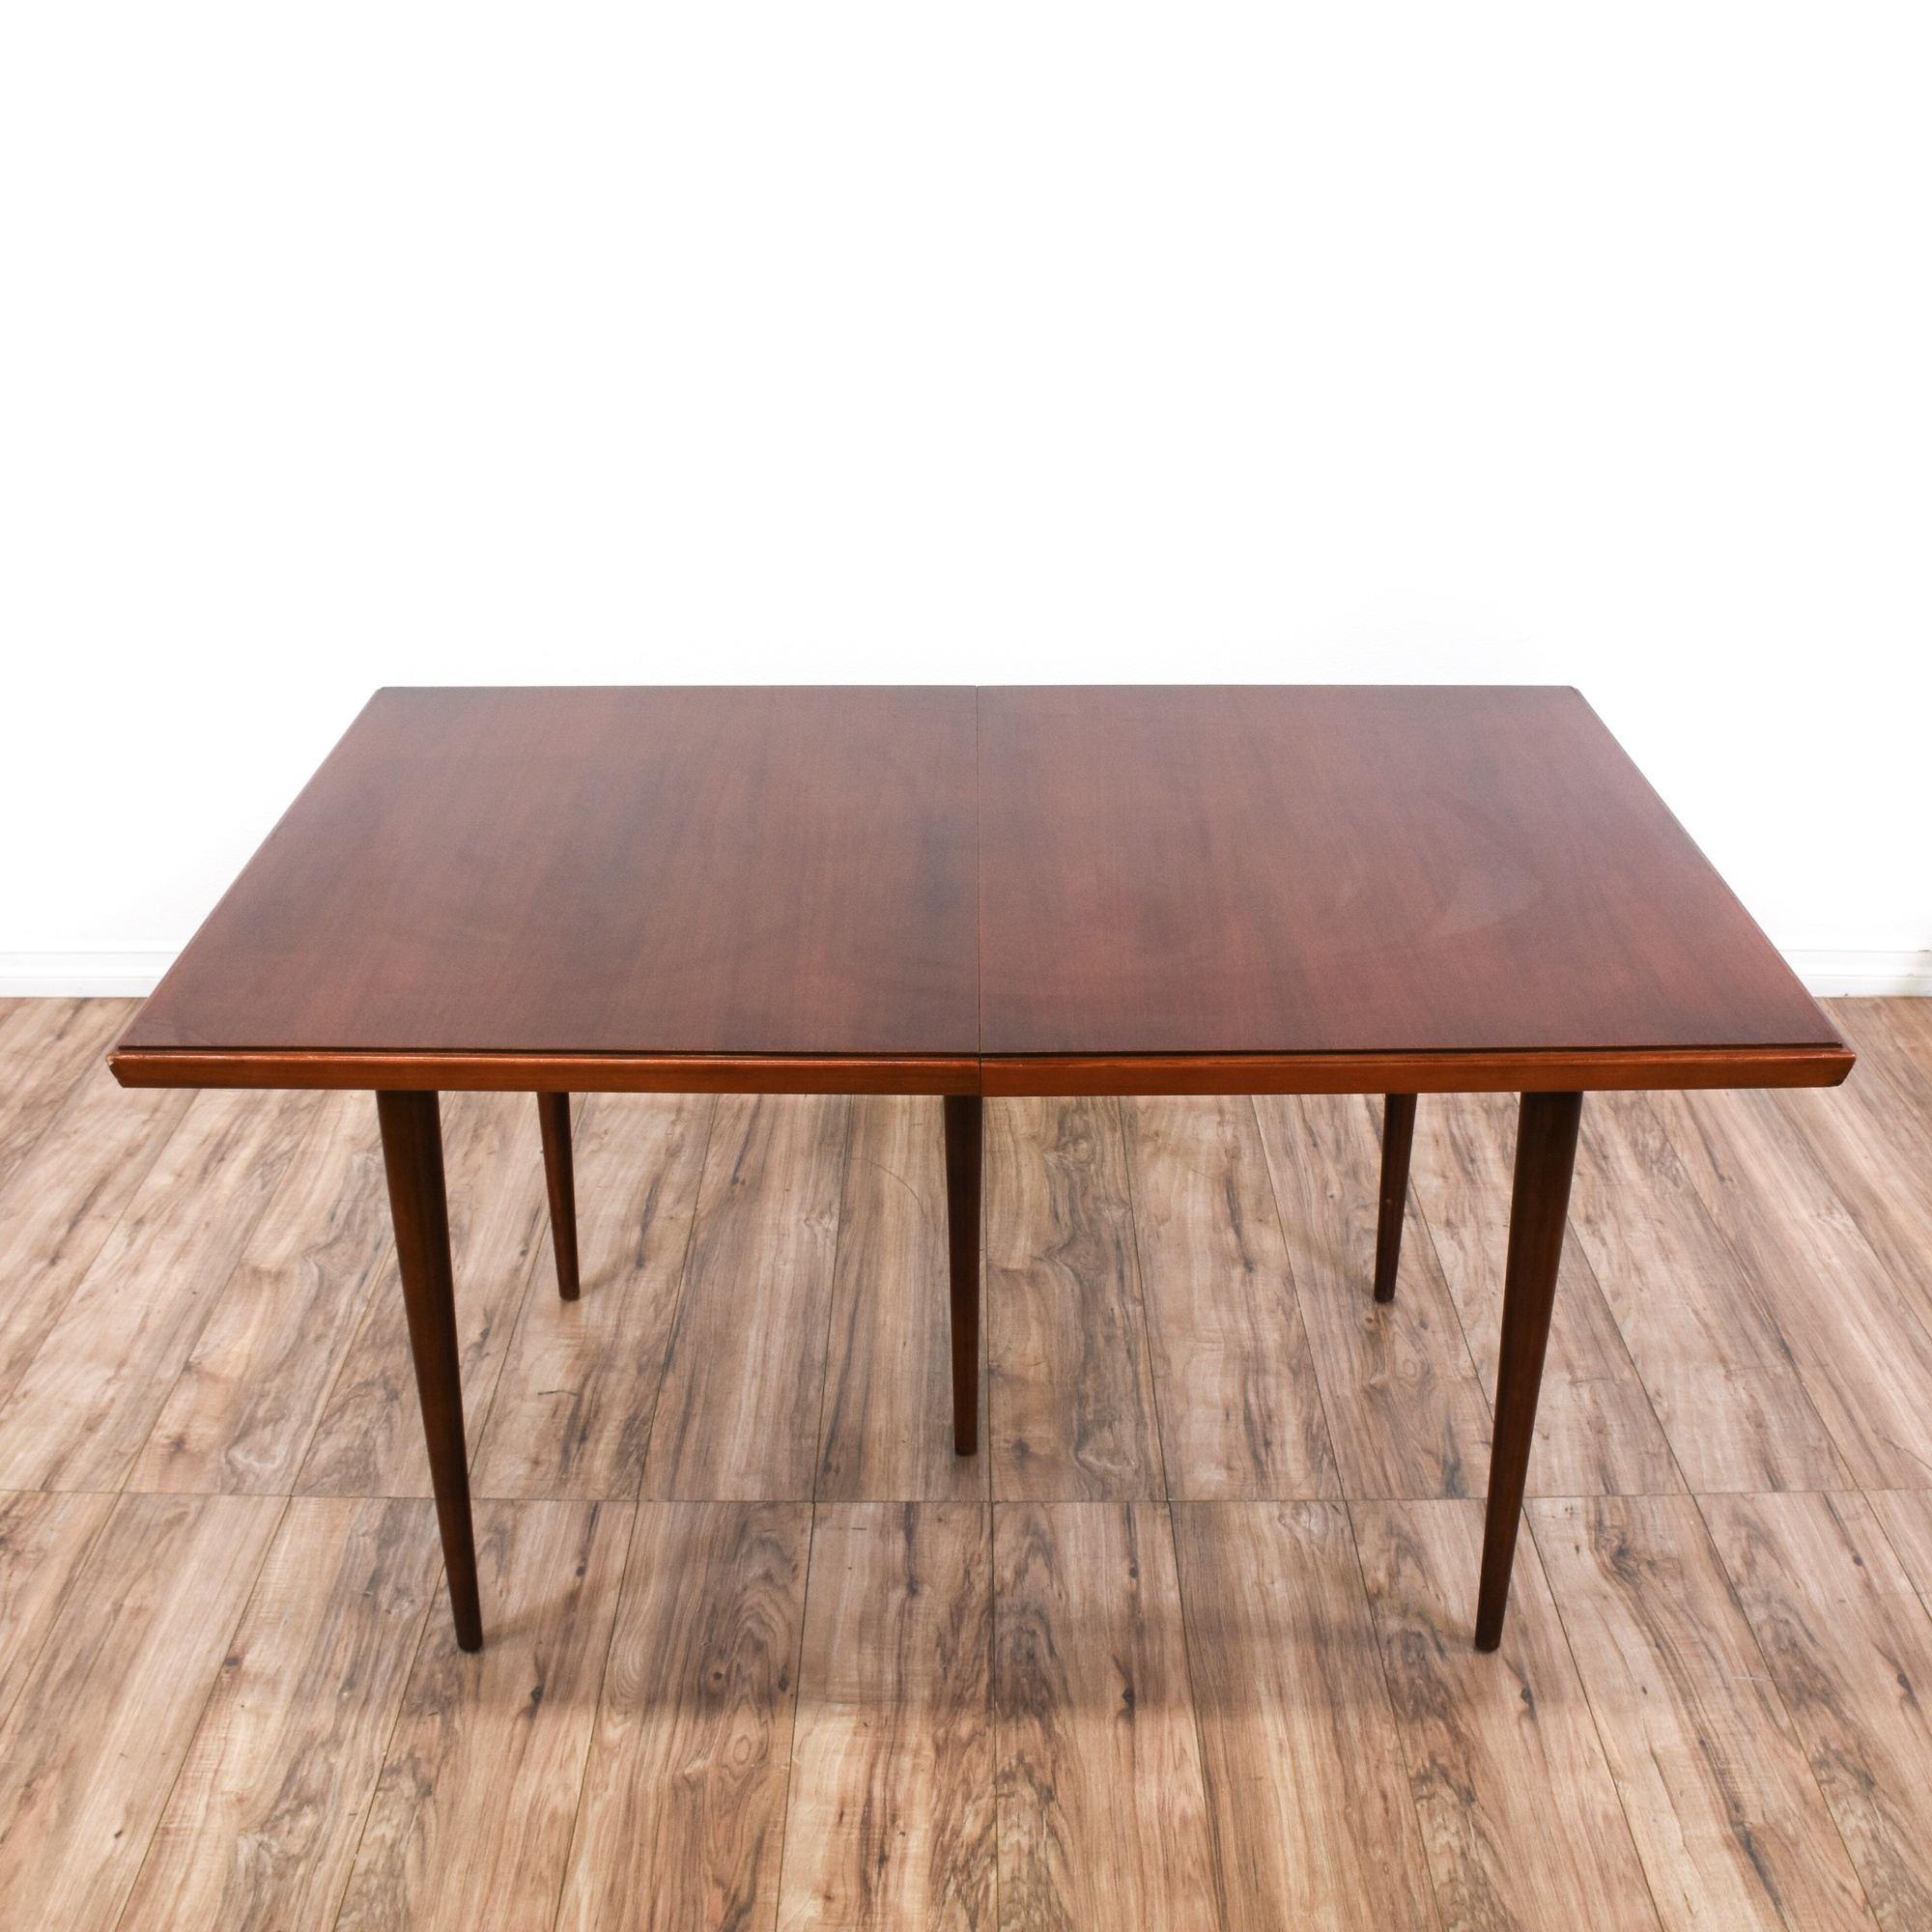 Mid Century Modern Cherry Dining Table w Leaves  : convertw2000amph2000ampfitcropamprotateexif from www.loveseat.com size 2000 x 2000 jpeg 326kB